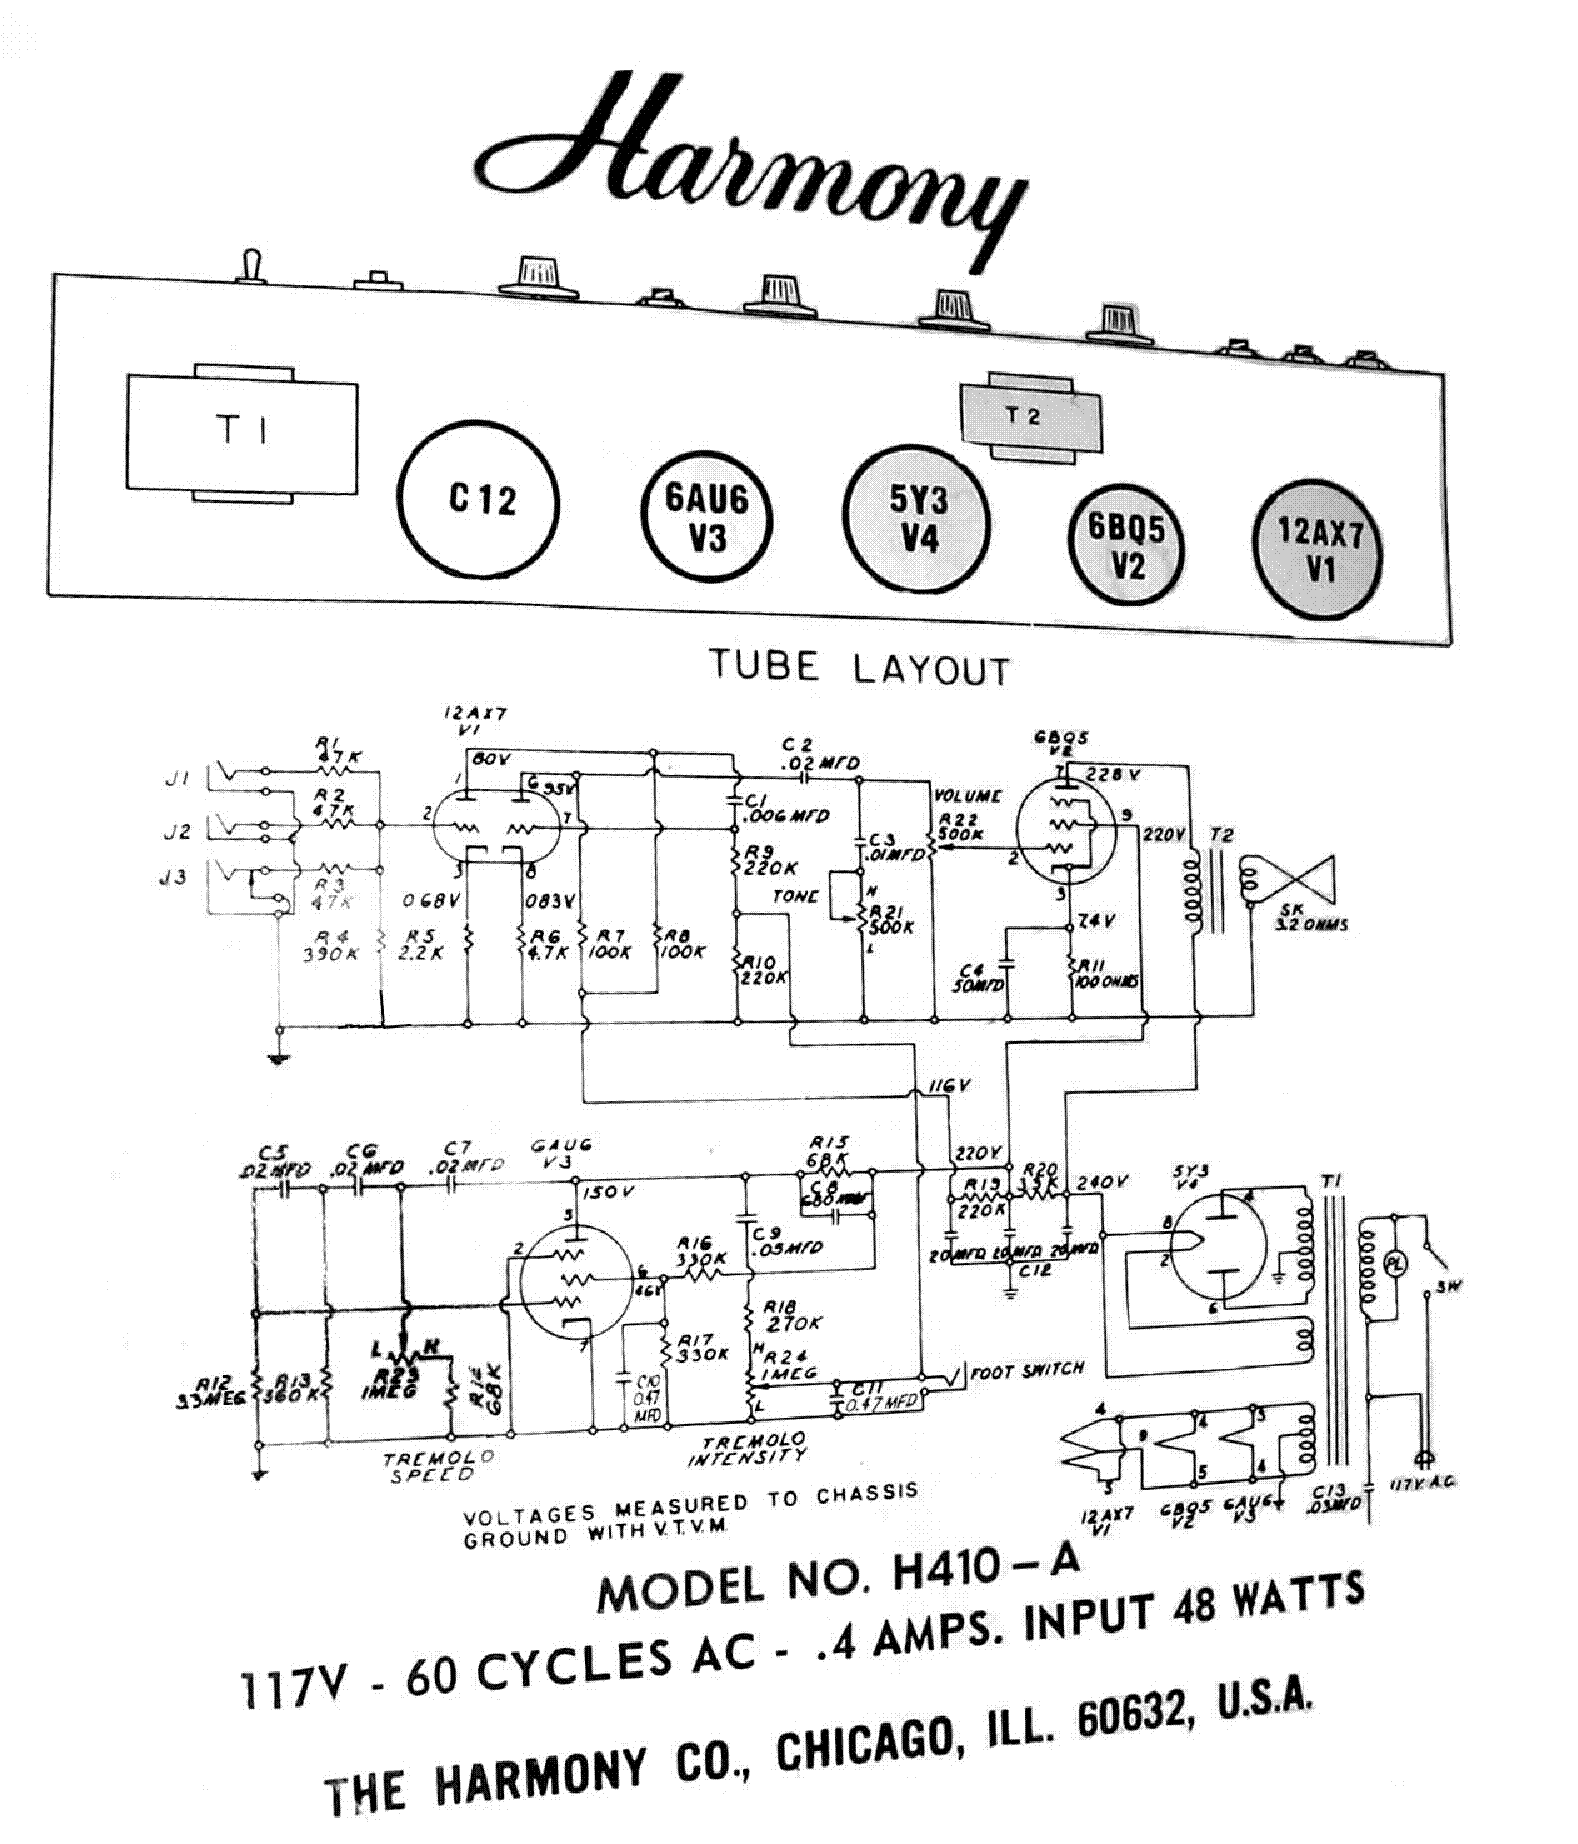 HARMONY H410A SCH service manual (1st page)